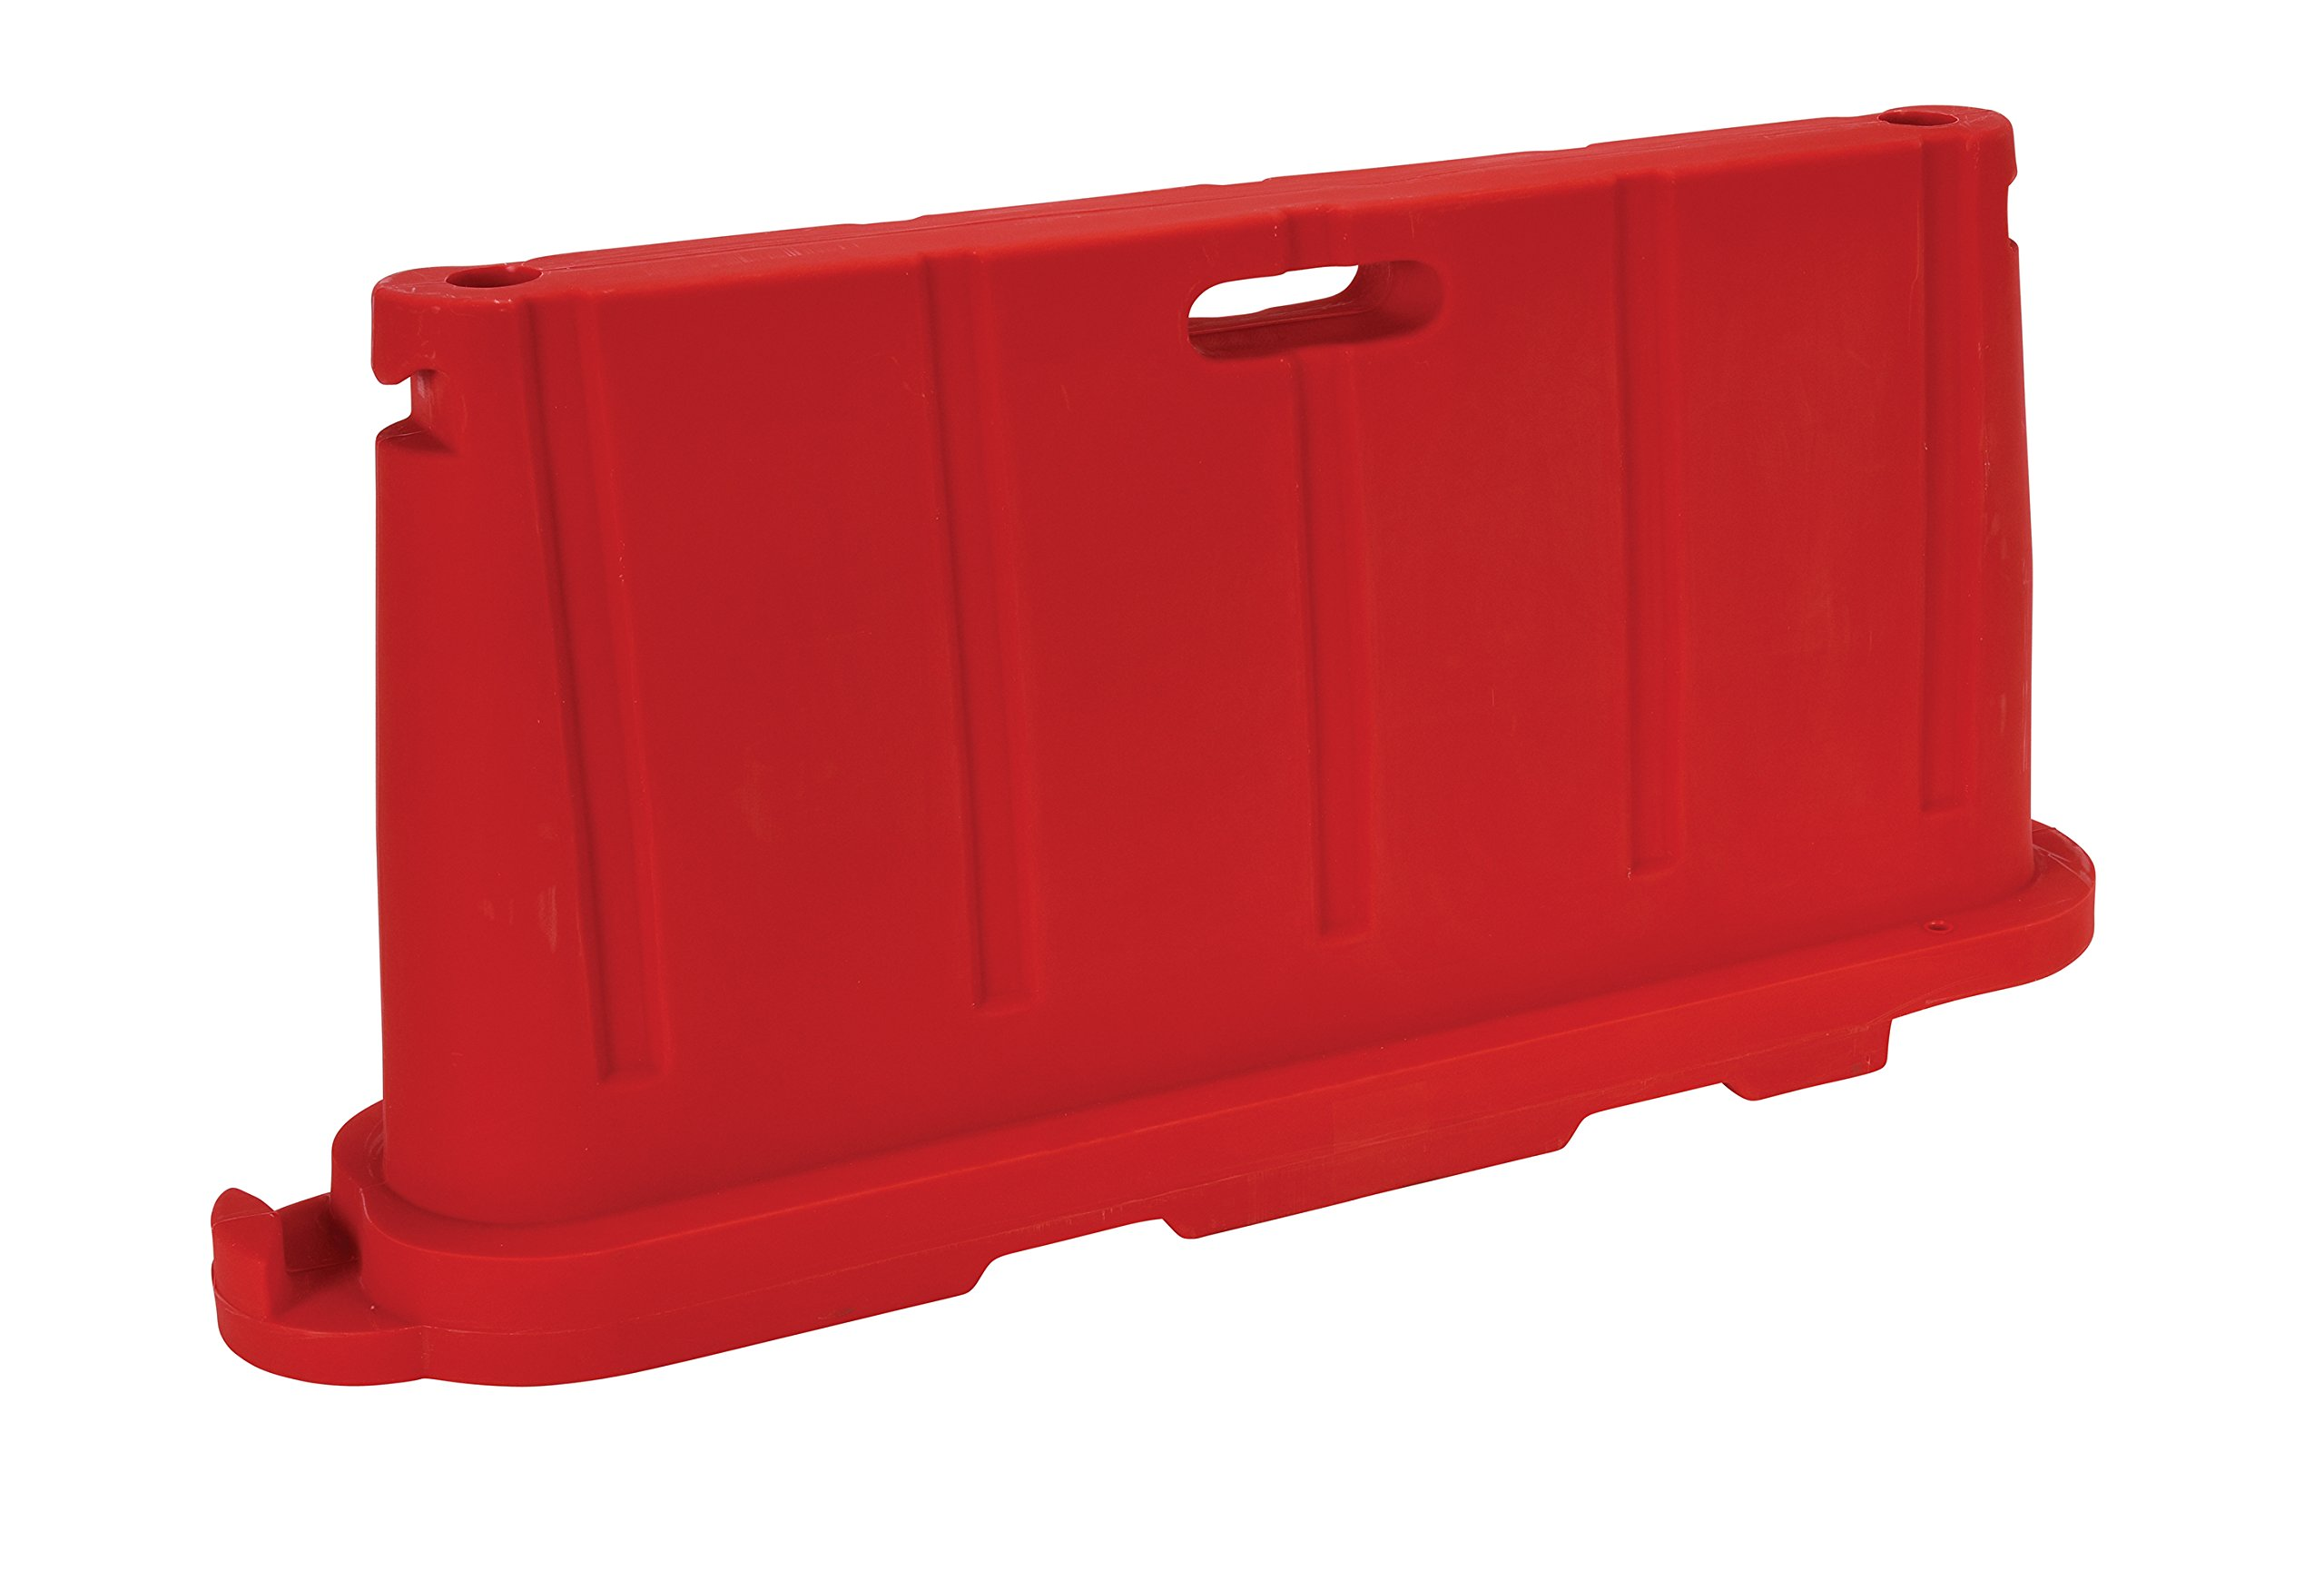 Vestil BCD-7636-RD Stackable/Portable Barricade, Virgin Polyethylene with UV Stabilizer, 5.4 gal Water Capacity, 32.50'' Length x 72.50'' Width x 39.50'' Height, Red